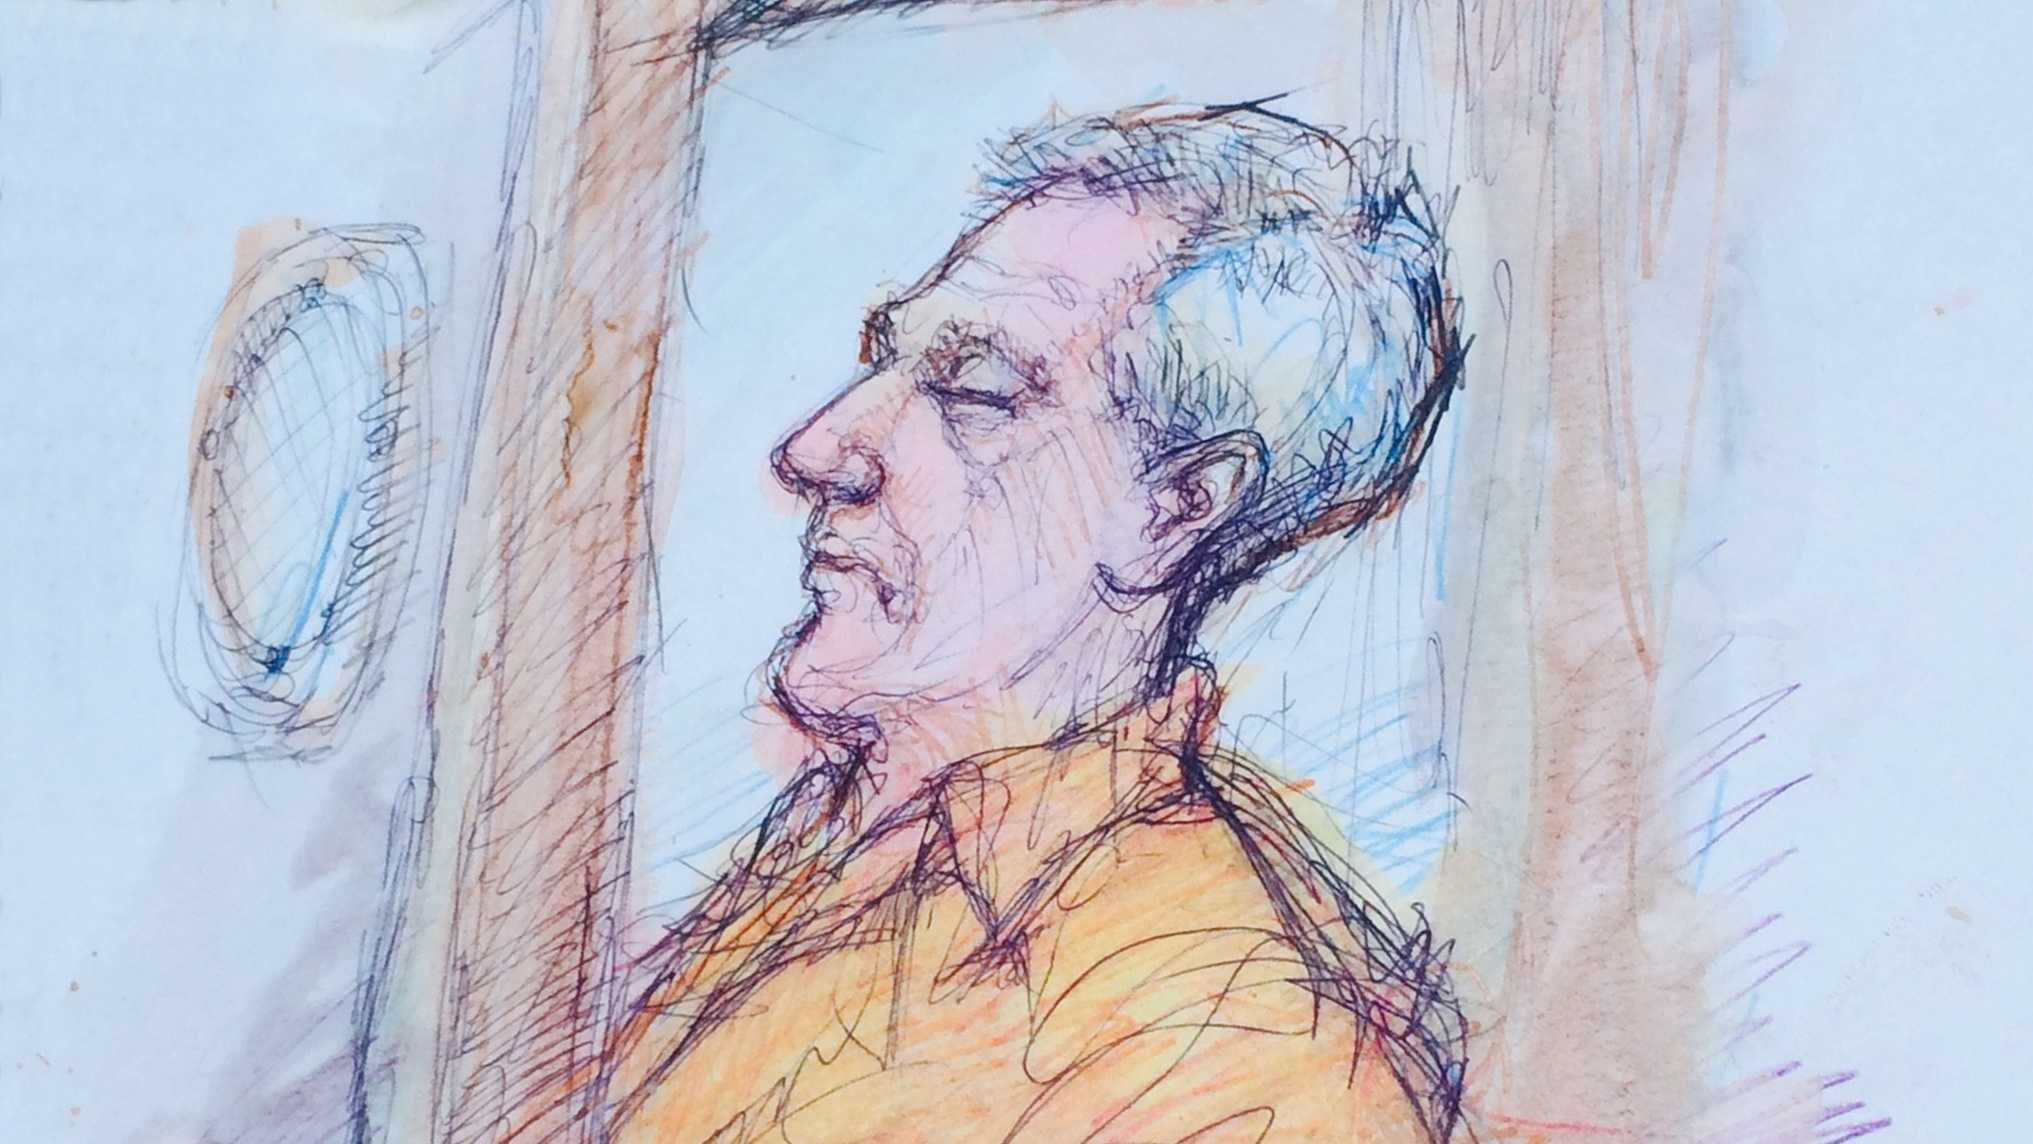 Robert Durst appears in court Monday for an extradition hearing after he was arrested on Saturday in New Orleans on an outstanding murder from Los Angeles County.